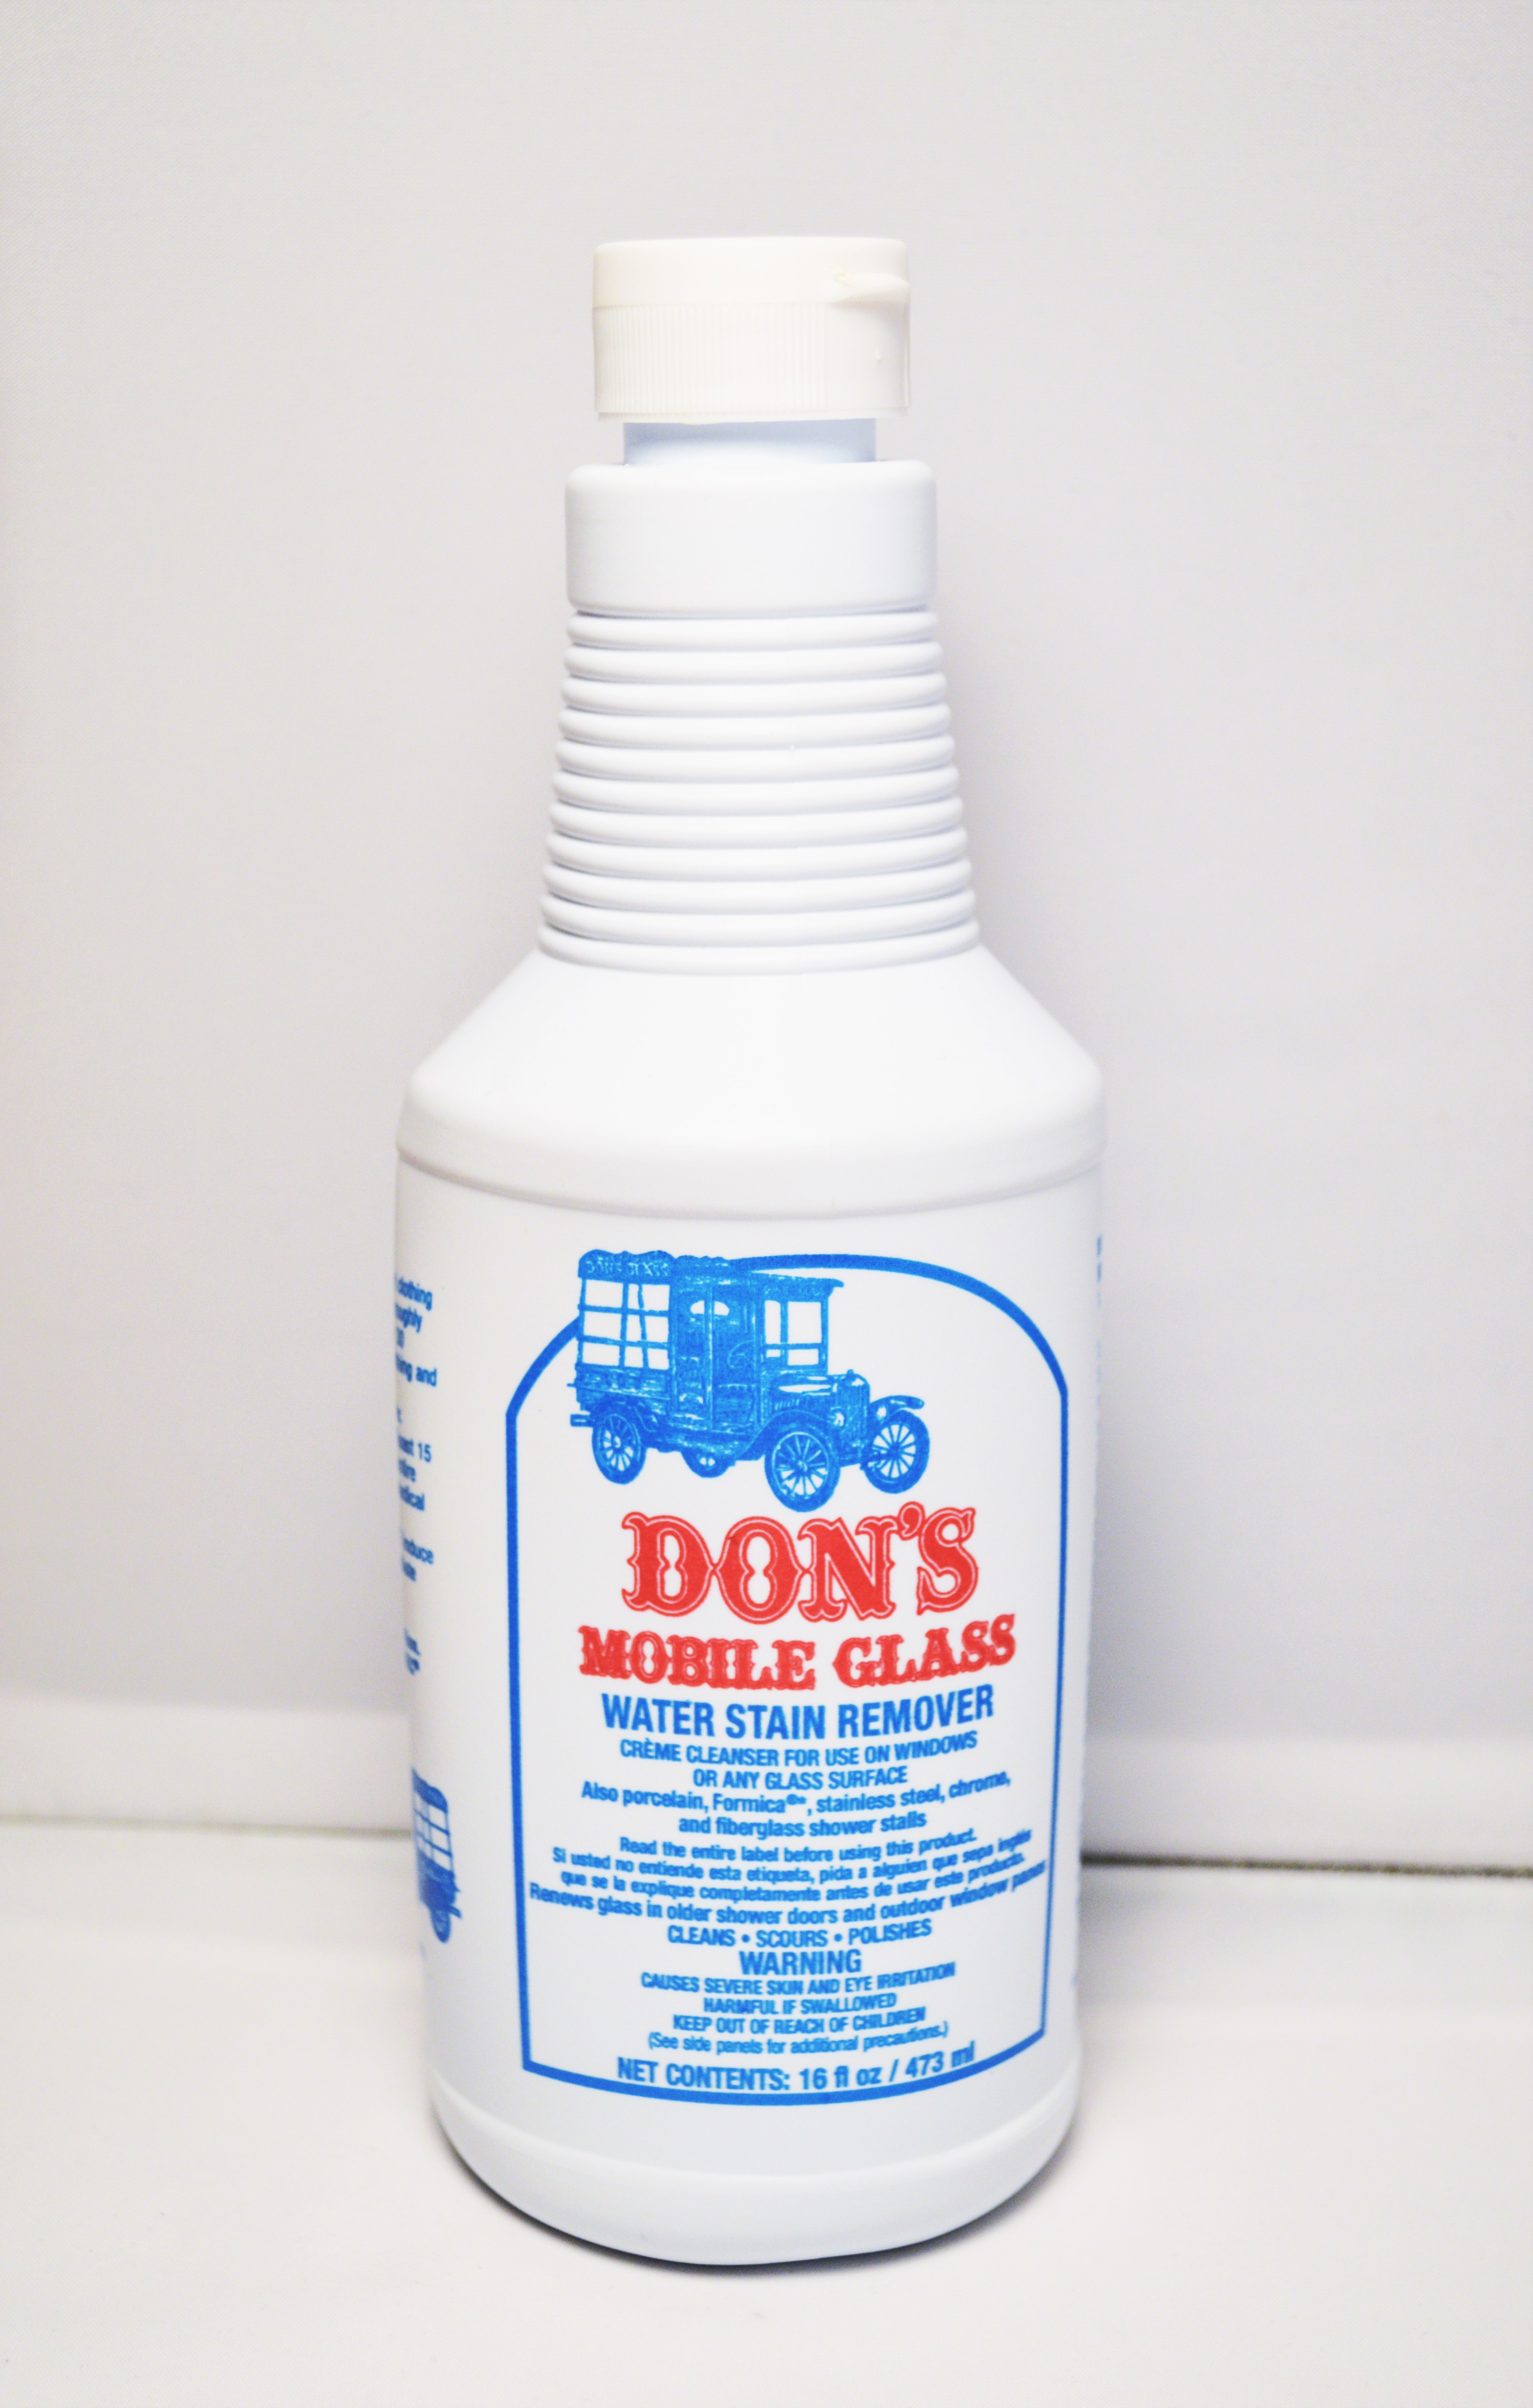 Don S Mobile Glass Professional Water Stain Remover 1